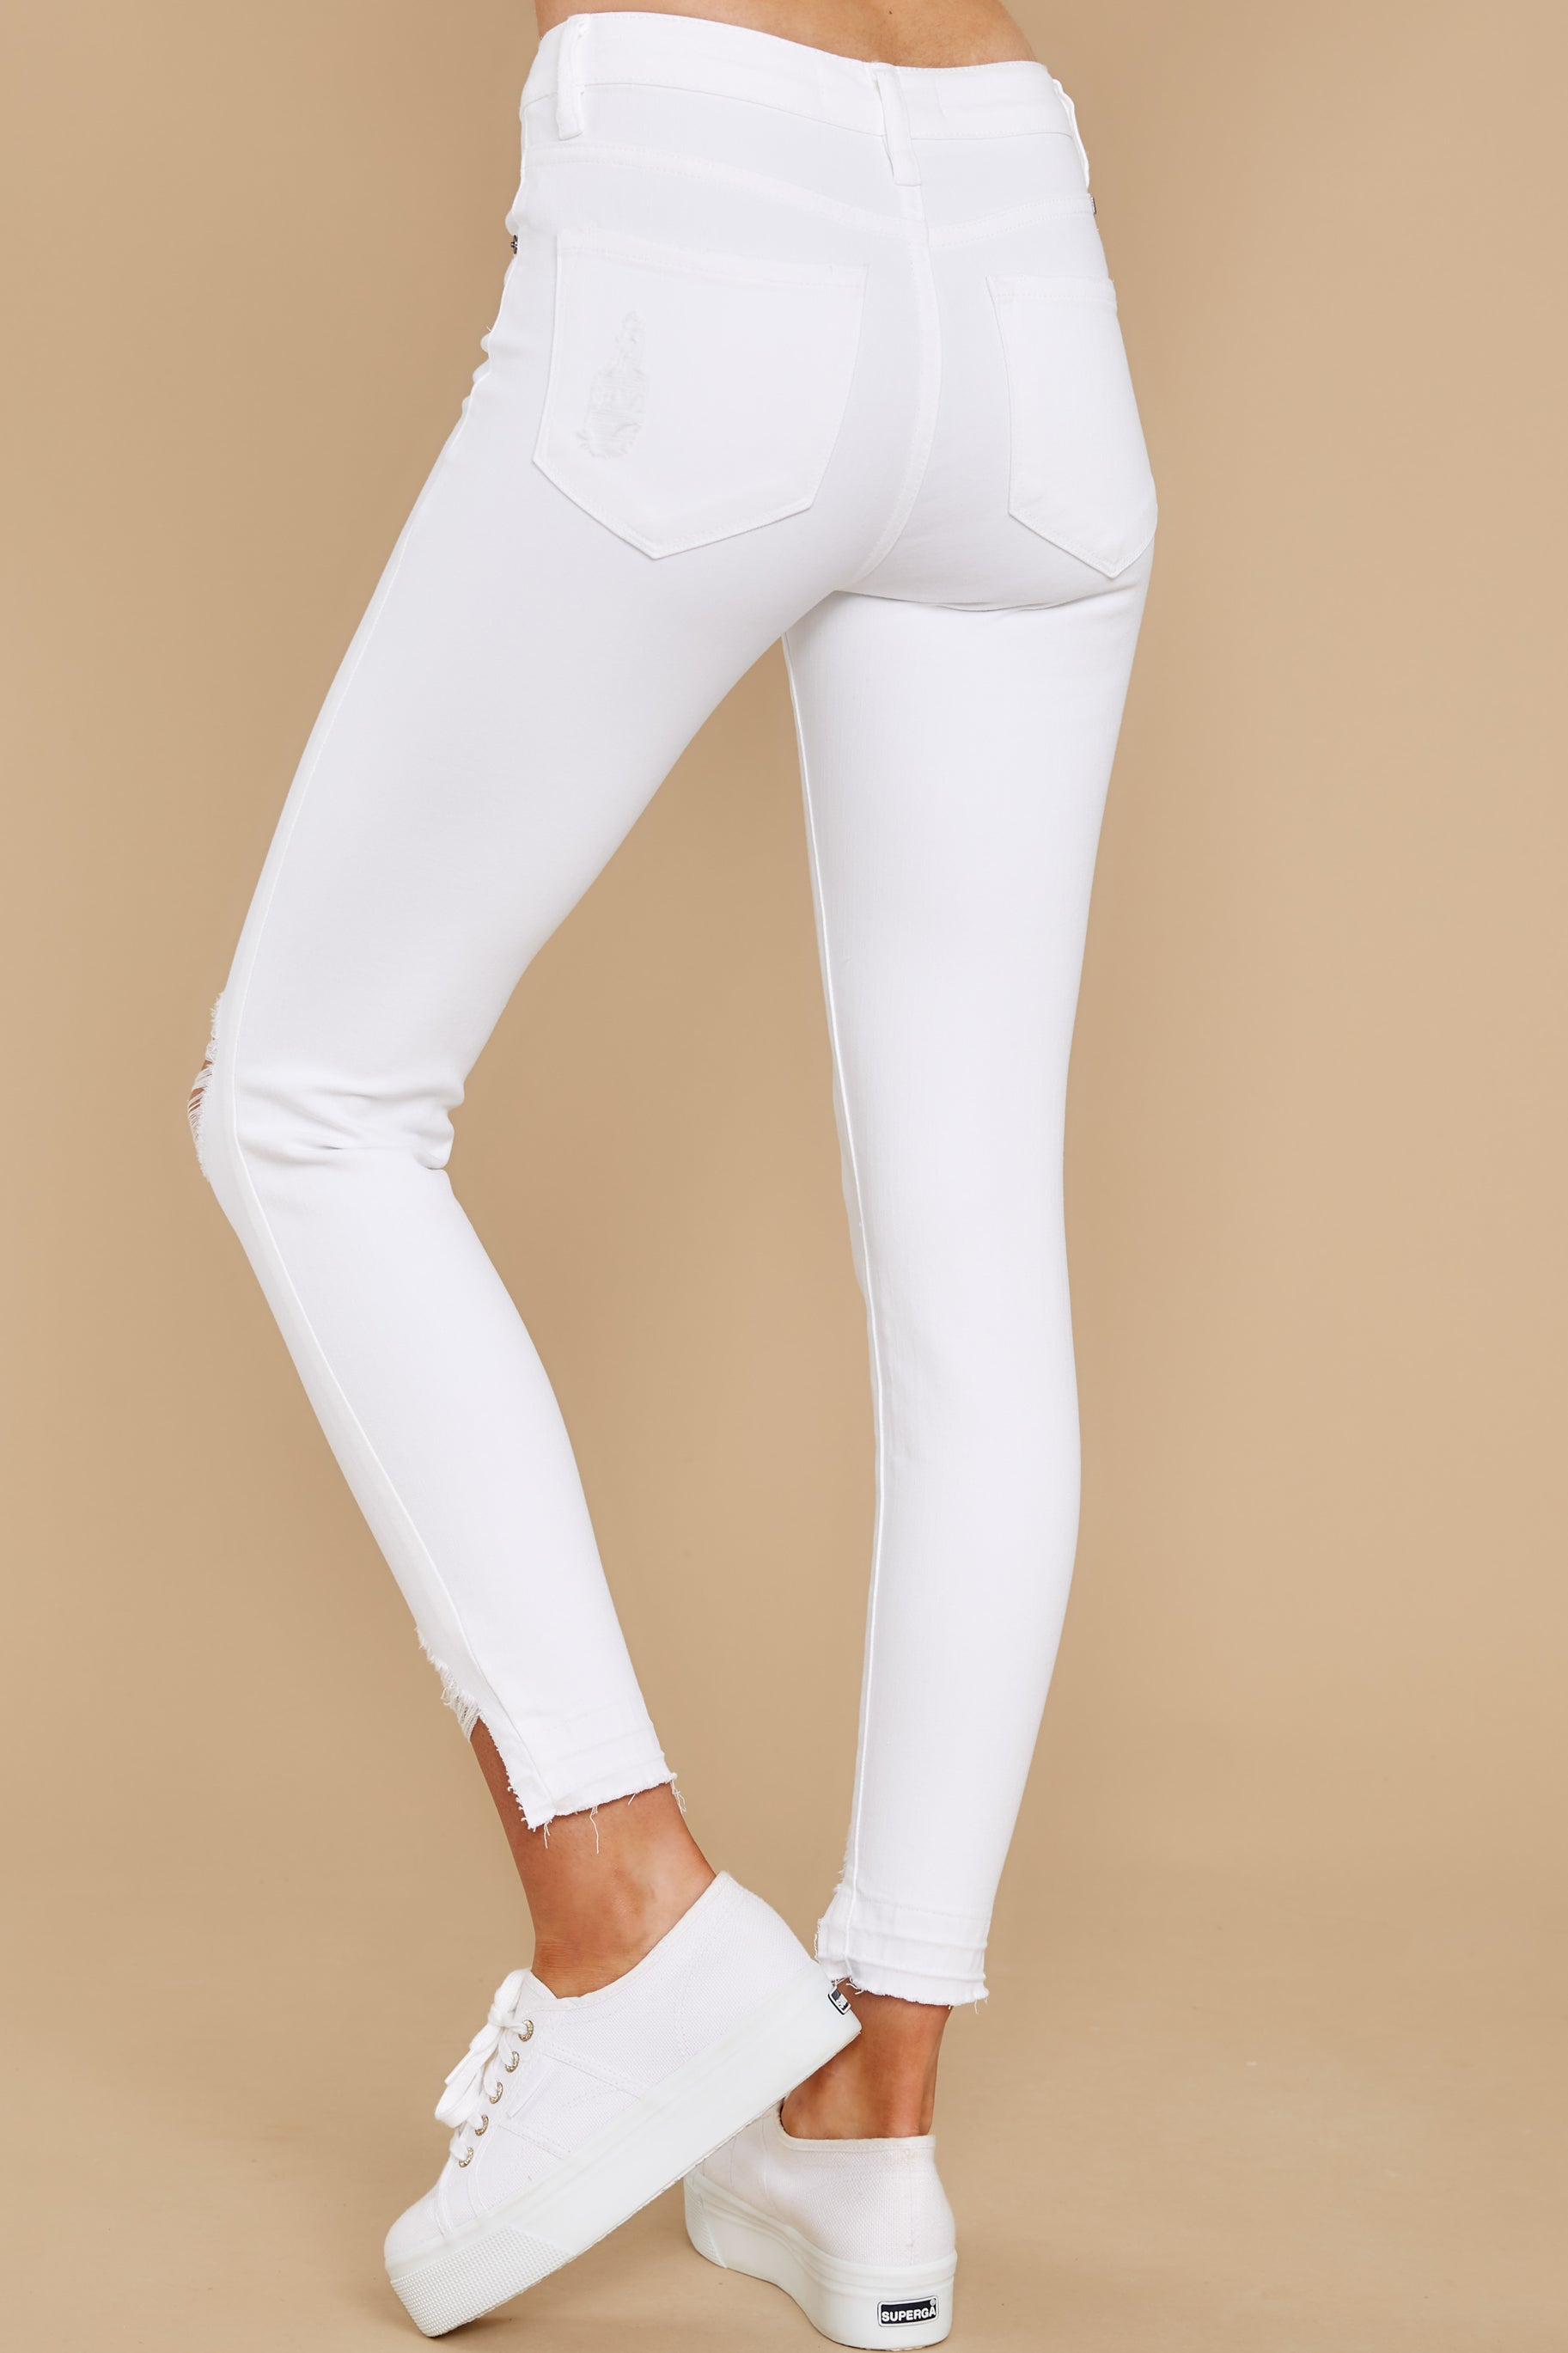 4 Come My Way White Distressed Skinny Jeans at reddress.com